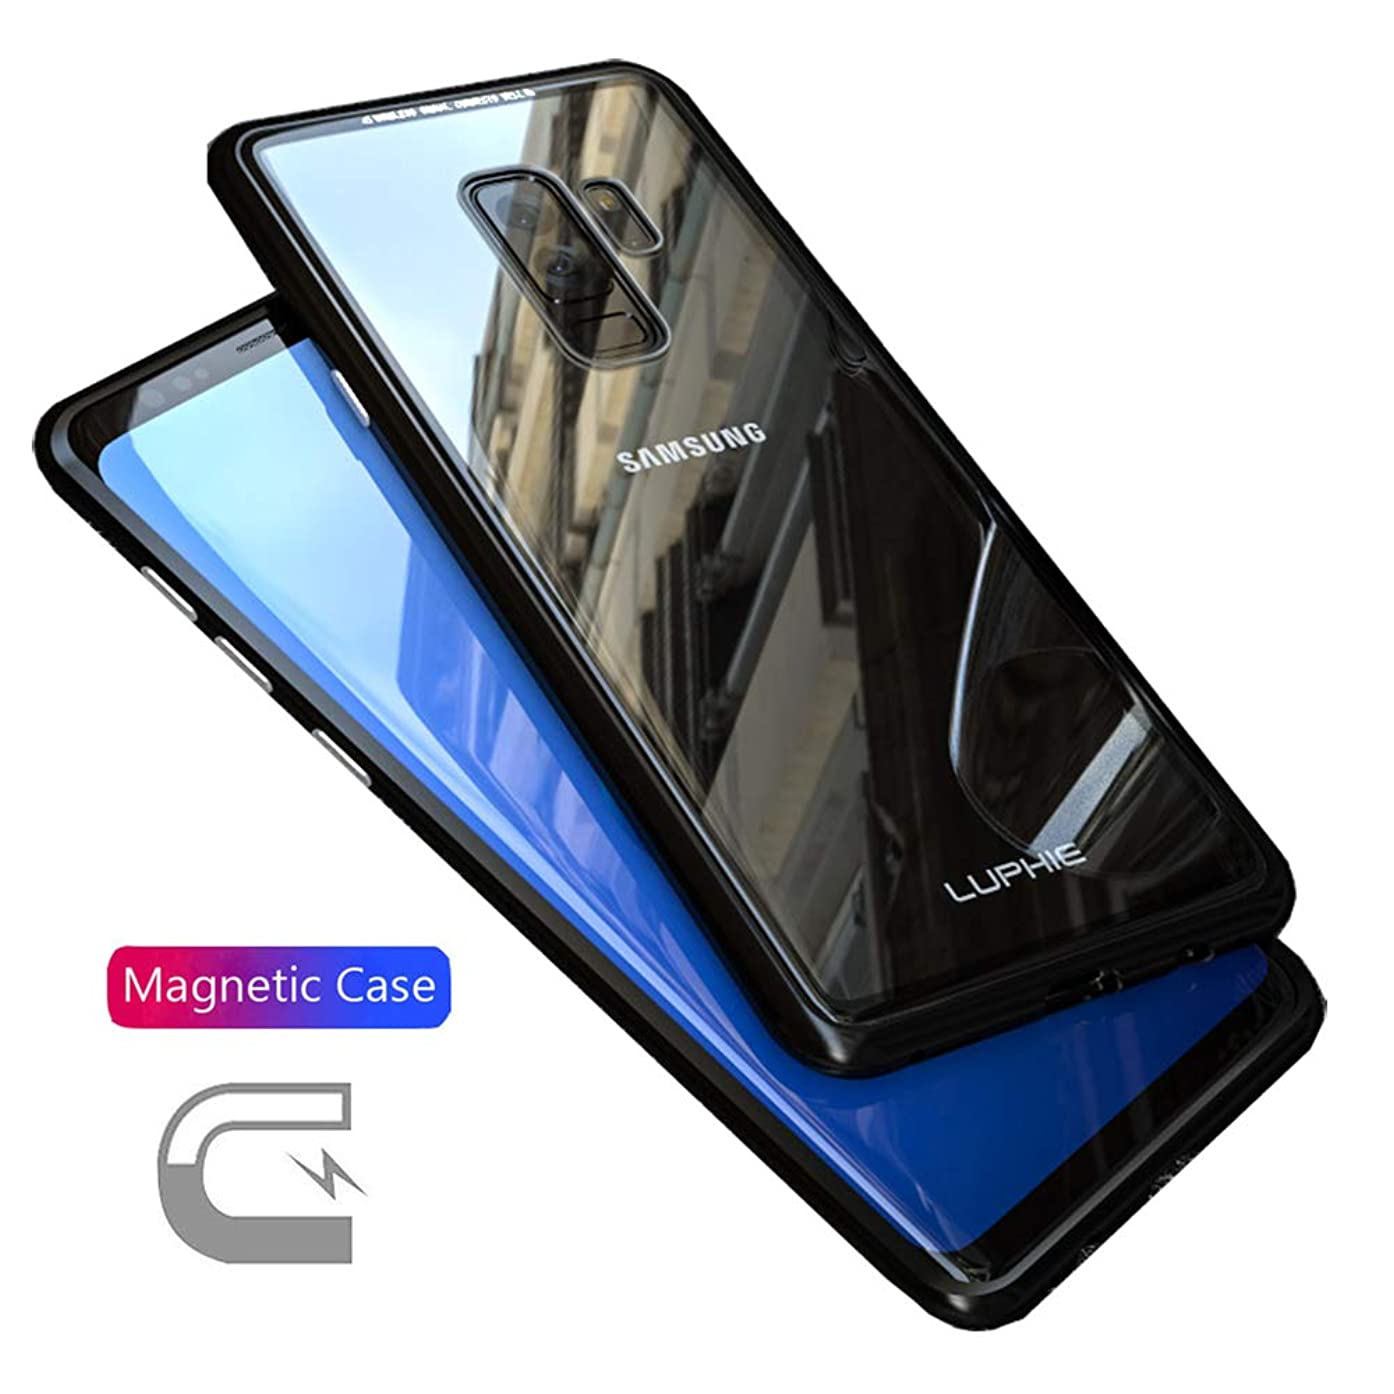 HIKERCLUB Galaxy S9 Plus Case Magnetic Adsorption 9H Tempered Glass Back + Metal Frame with Built-in Multiple Magnet Ultra Clear Slim Protective Cover for Galaxy S9 Plus (Black)